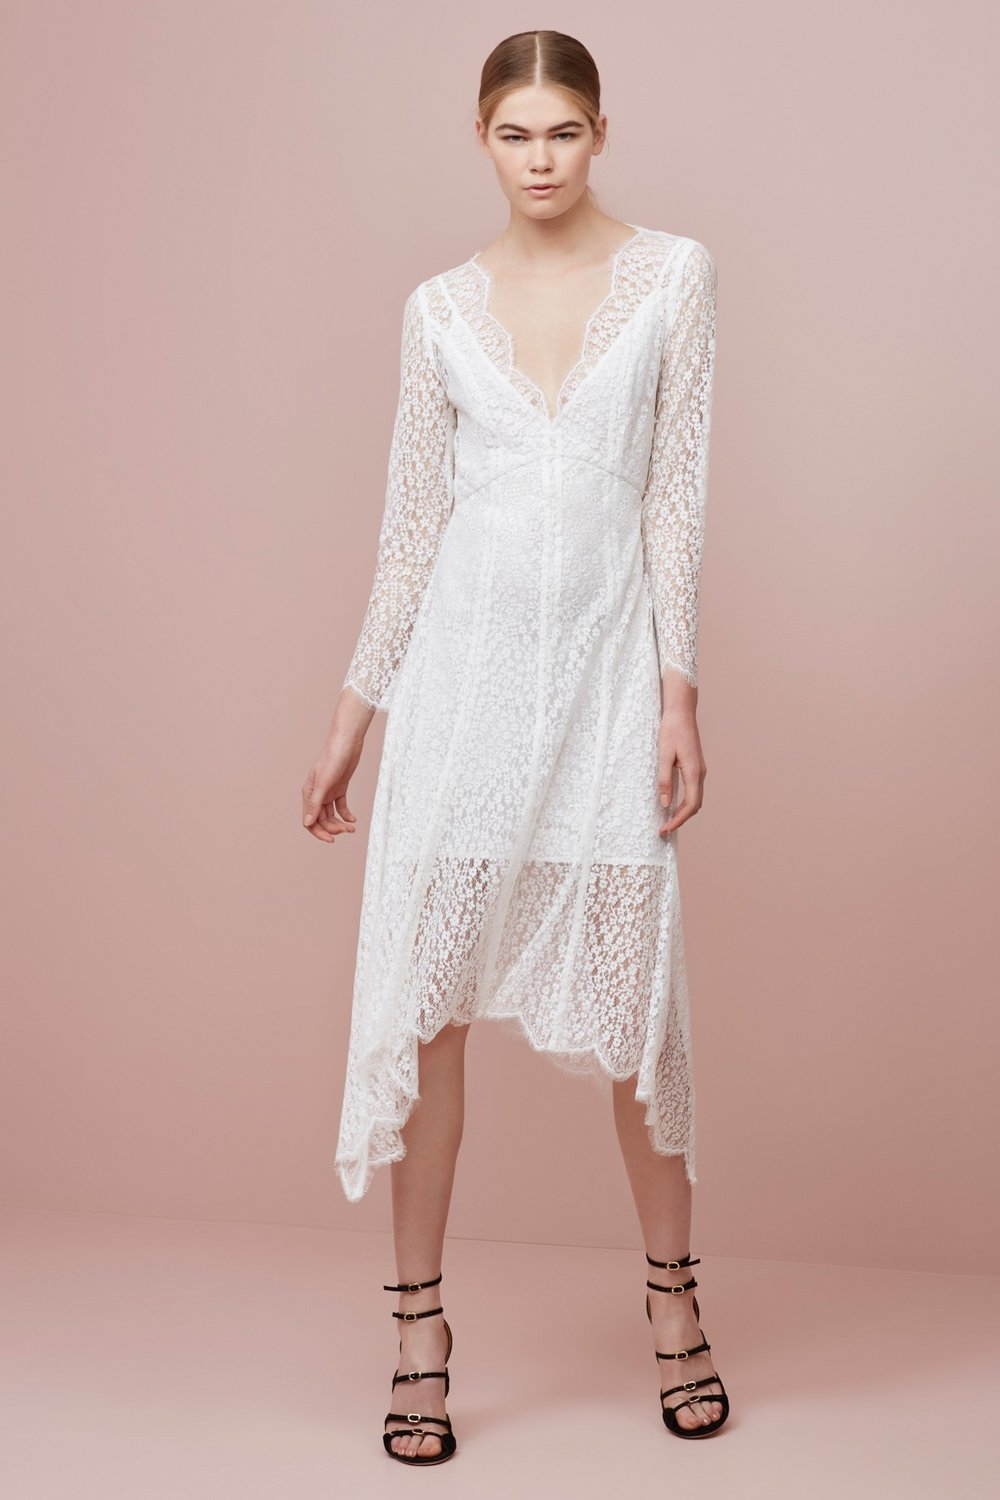 Keepsake The Label Prelude L/S Lace Dress (NH exclusive).